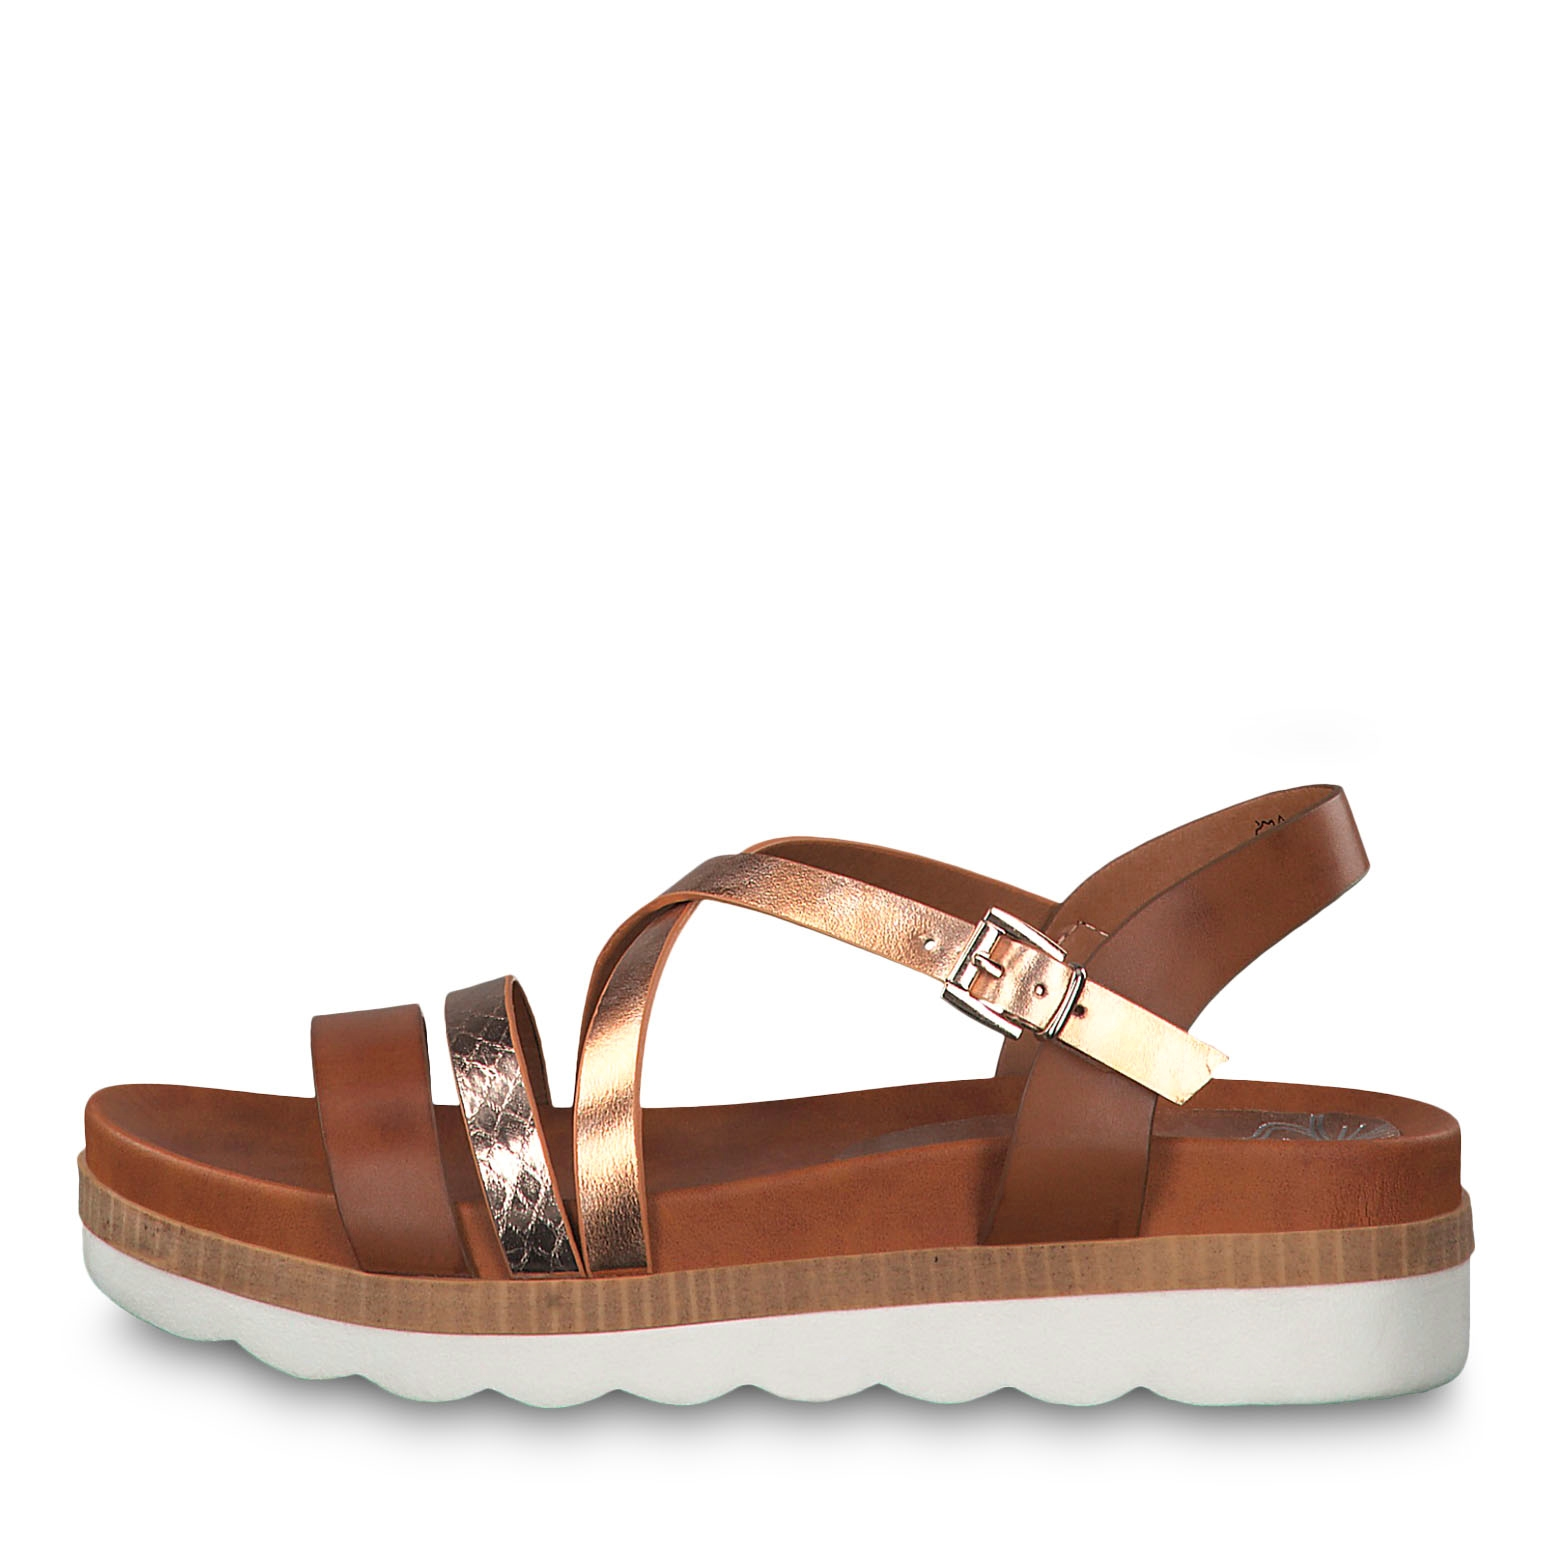 Sandal - brown, COGNAC COMB, hi-res